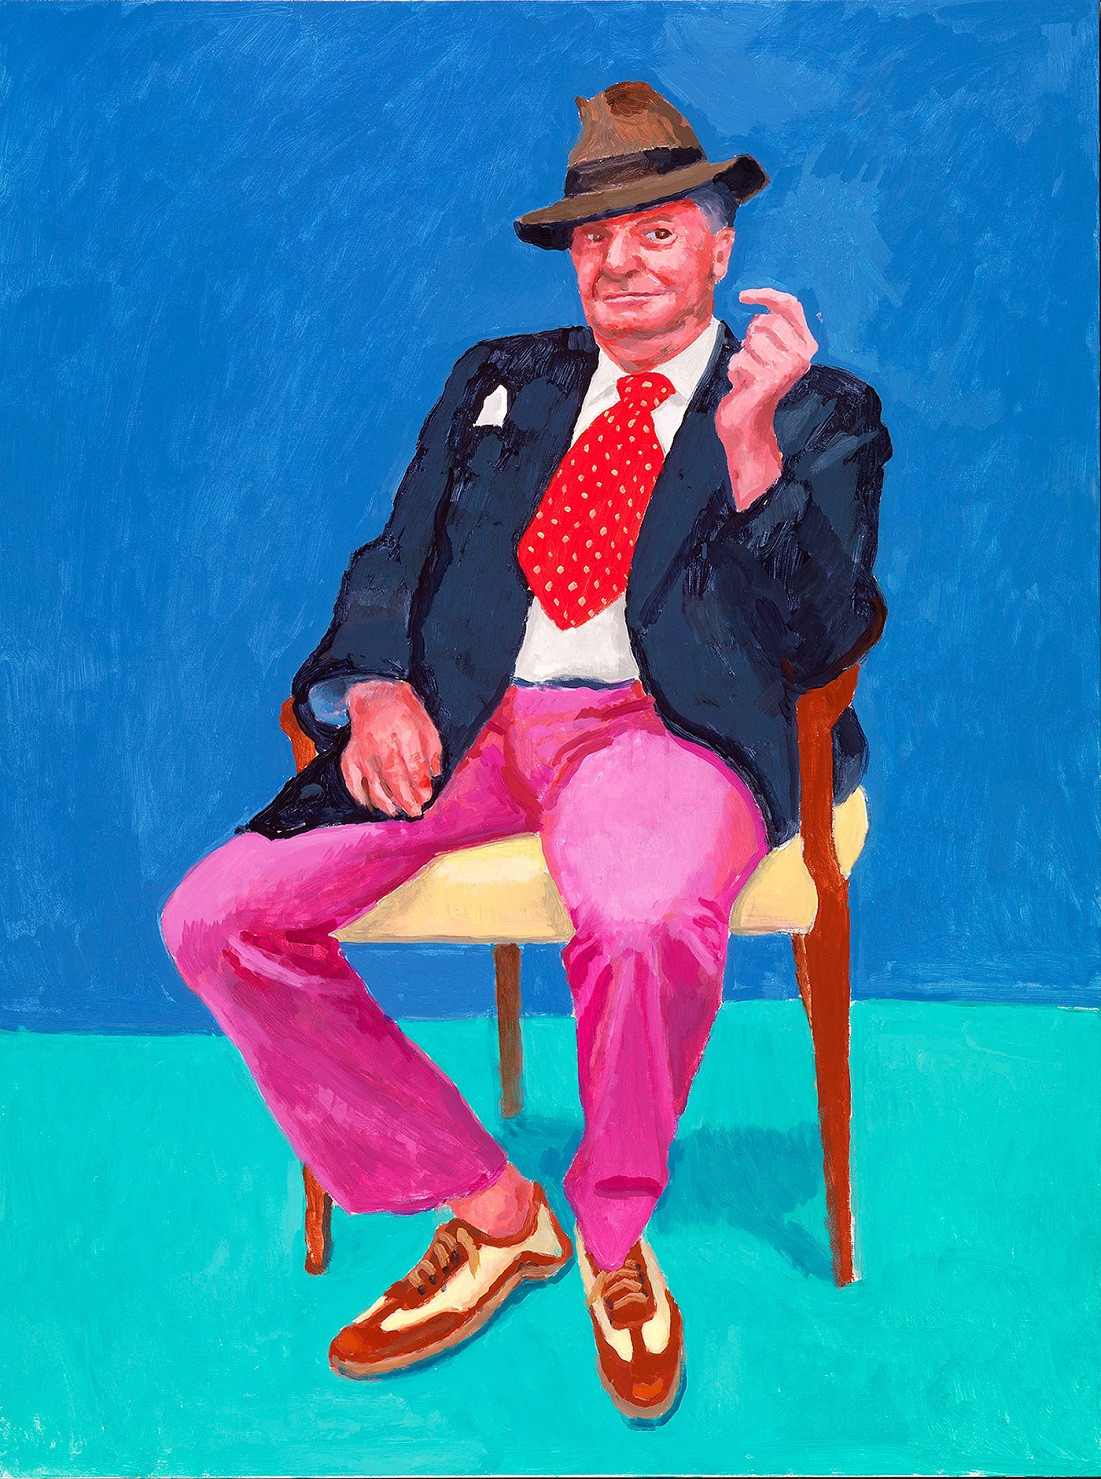 BarryHumphries